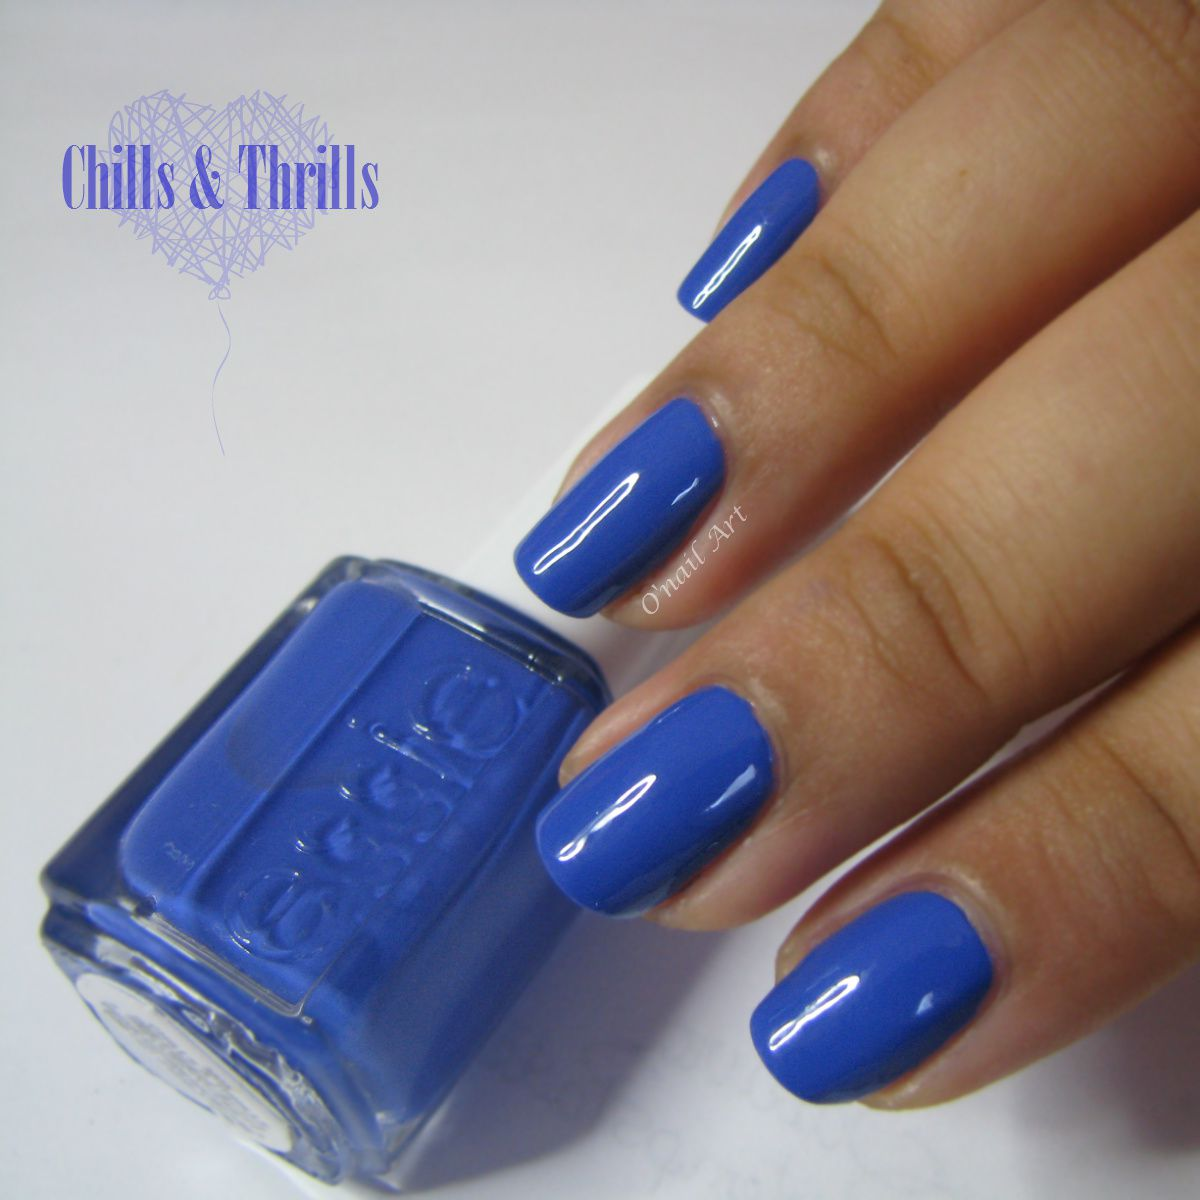 """Chills & Thrills"" par ESSIE"